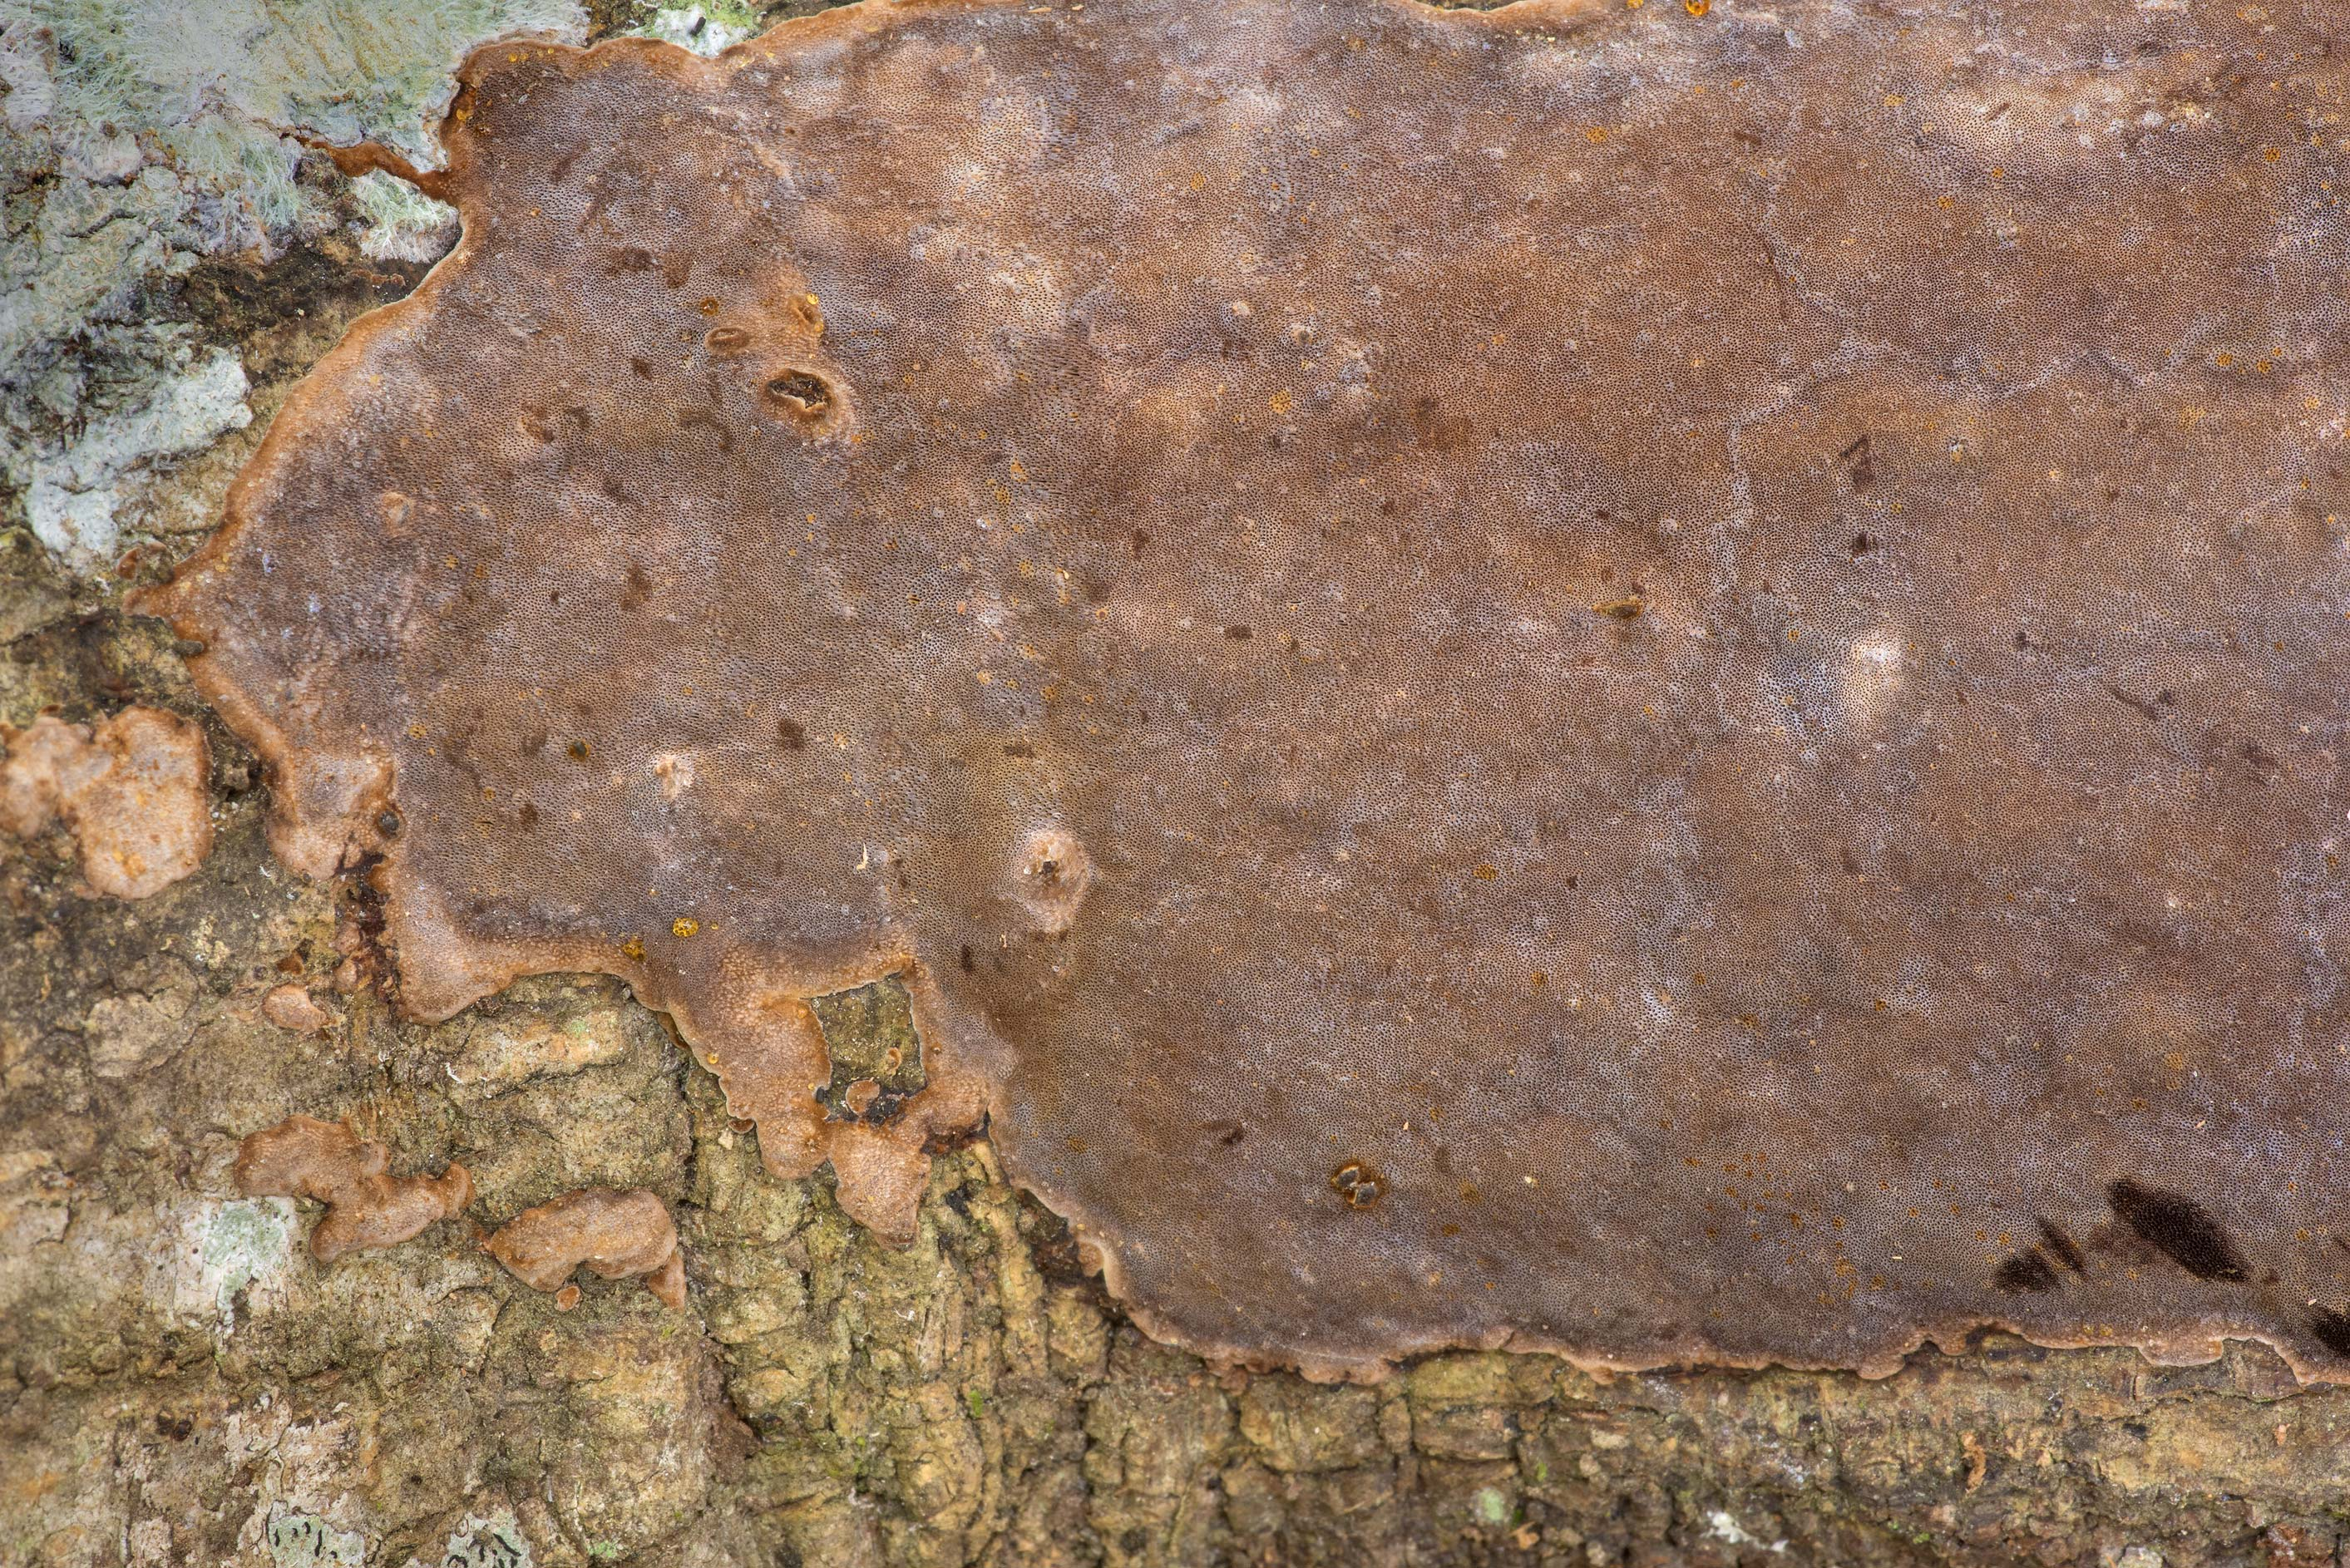 Brown crust fungus Phellinus at Big Creek Scenic...National Forest. Shepherd, Texas